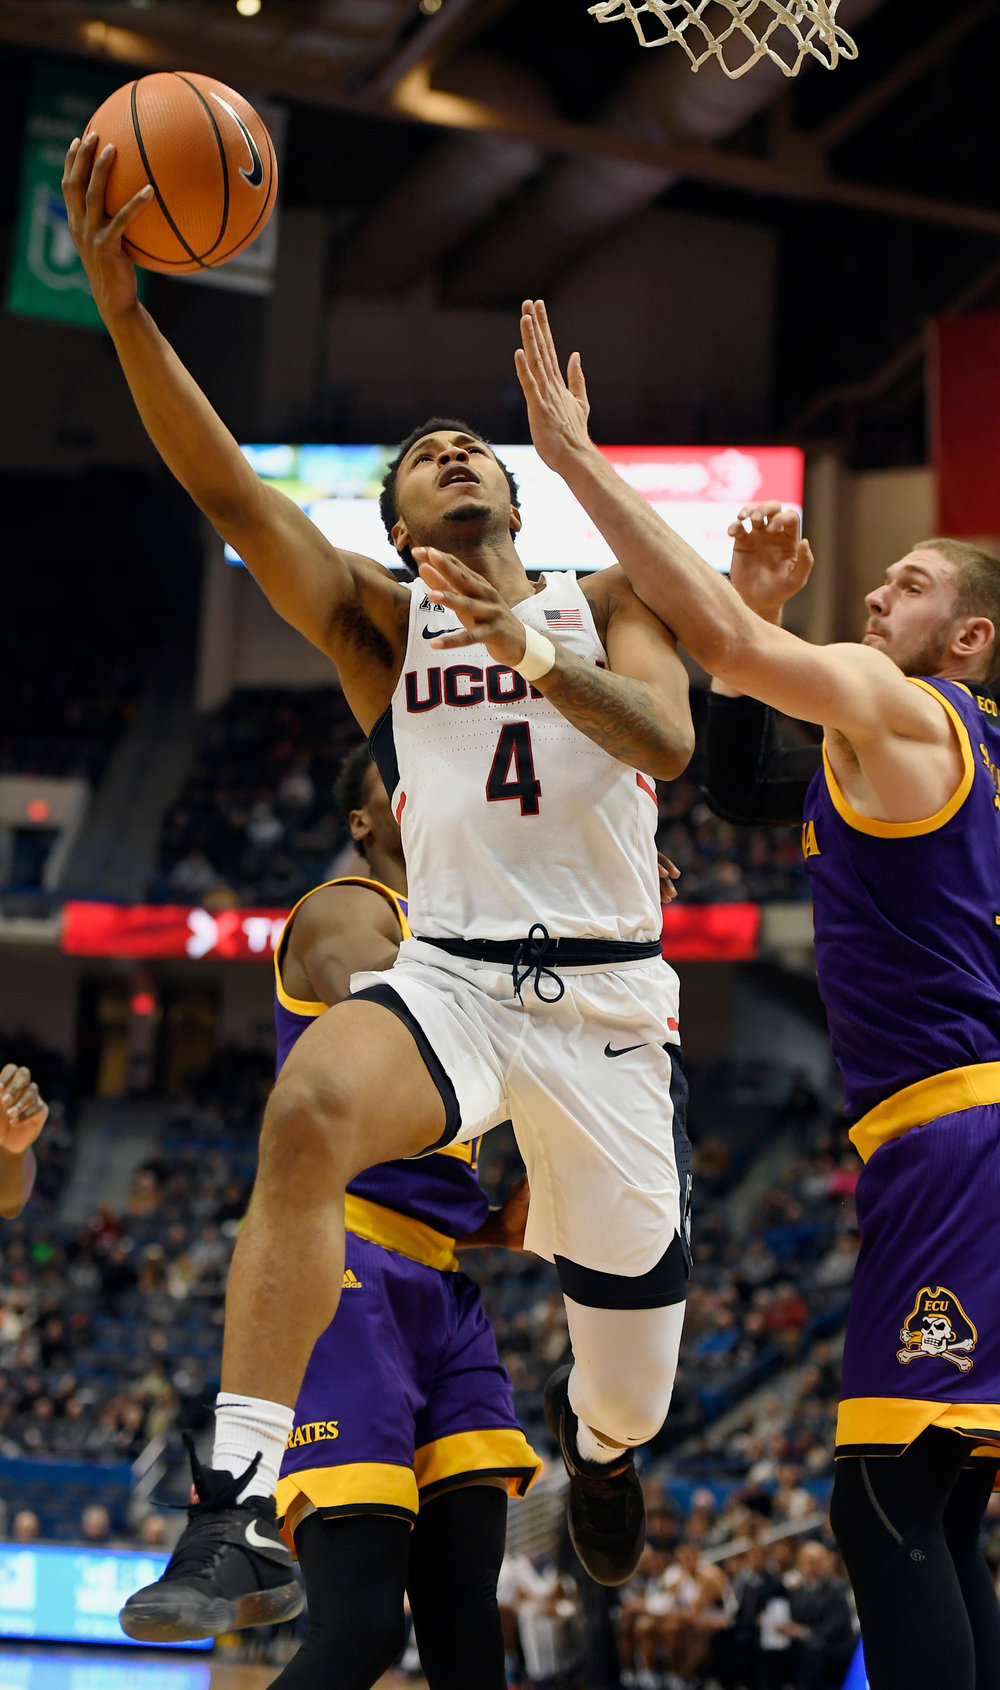 Connecticut's Jalen Adams, left, goes up for a basket as East Carolina's Dimitri Spasojevic, right, defends, during the first half of an NCAA college basketball game, Saturday, Jan. 6, 2018, in Hartford, Conn. (AP Photo/Jessica Hill)